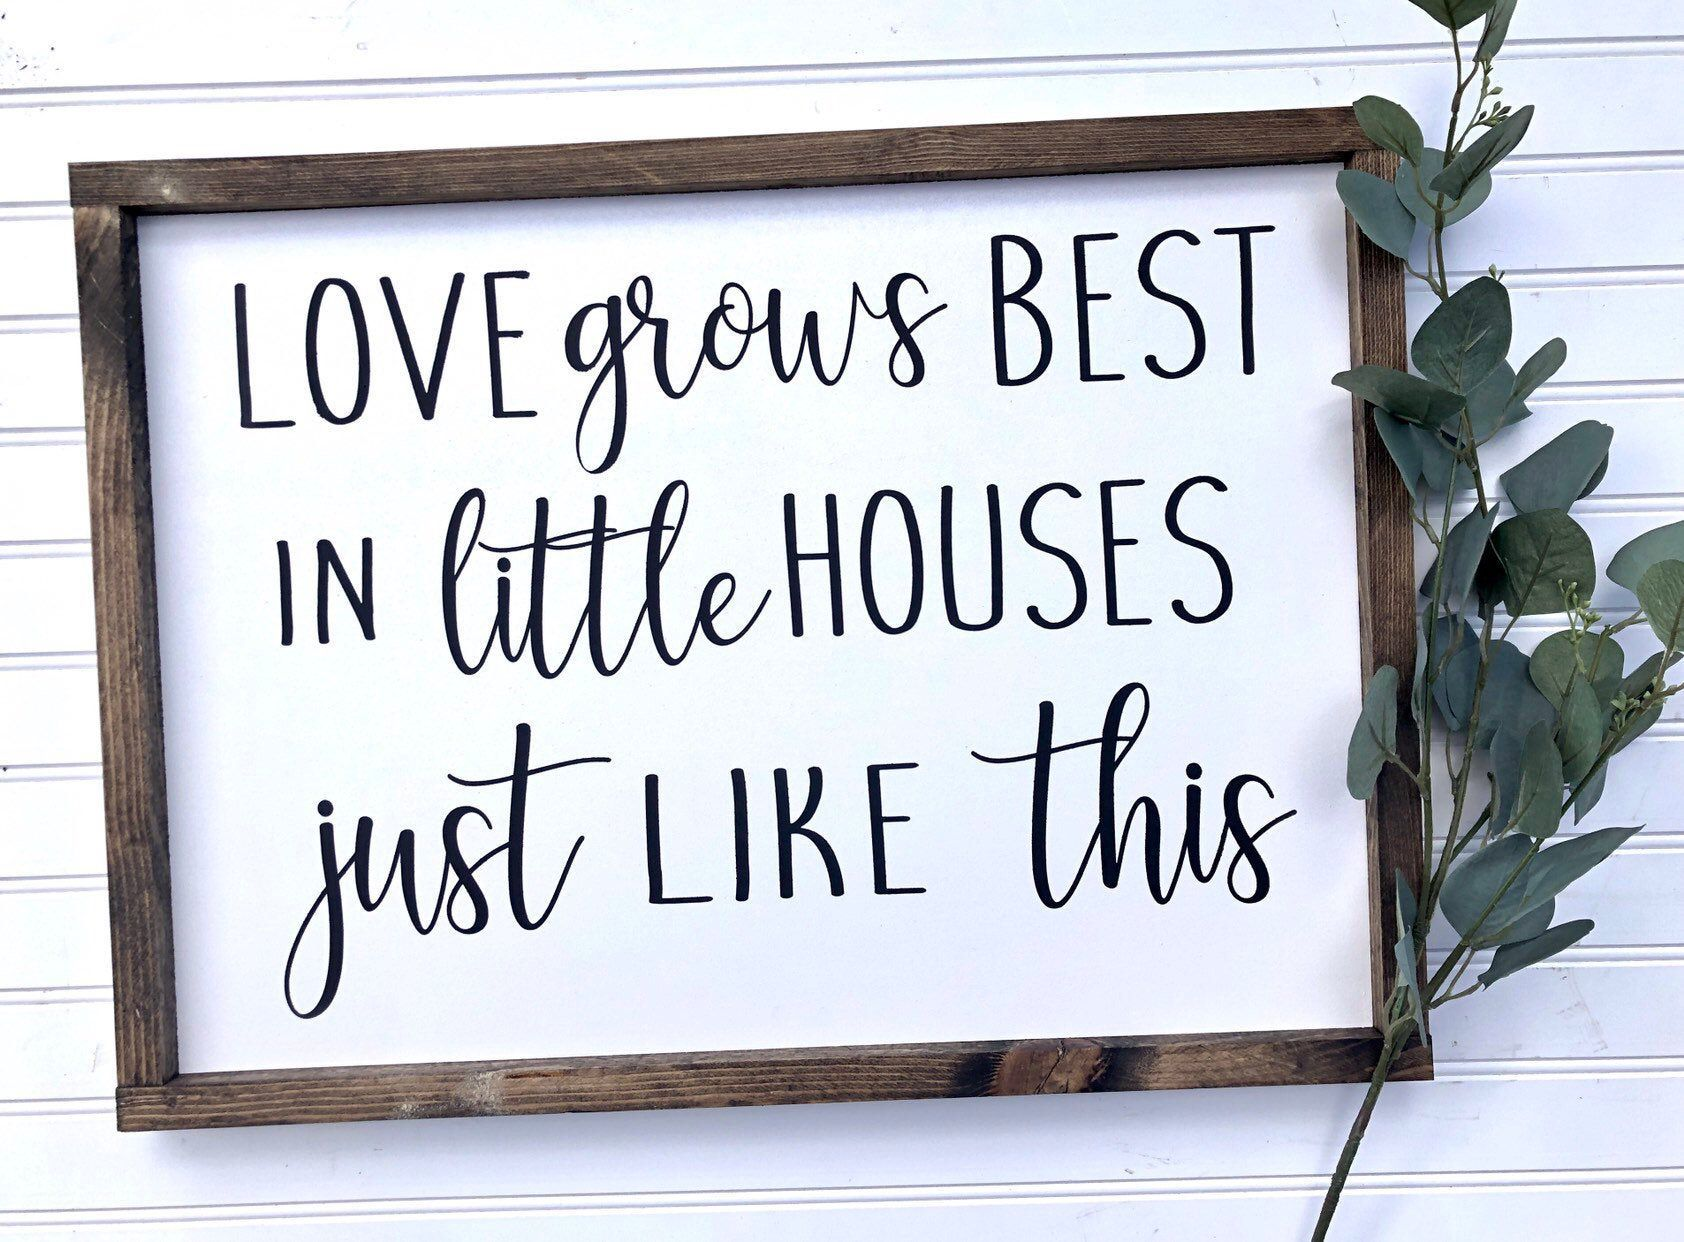 Large Wood Sign - Love Grows Best In Little Houses Just Like This - Love - Housewarming - Farmhouse Sign - Home Decor - Inspirational Sign#decor #farmhouse #grows #home #houses #housewarming #inspirational #large #love #sign #wood